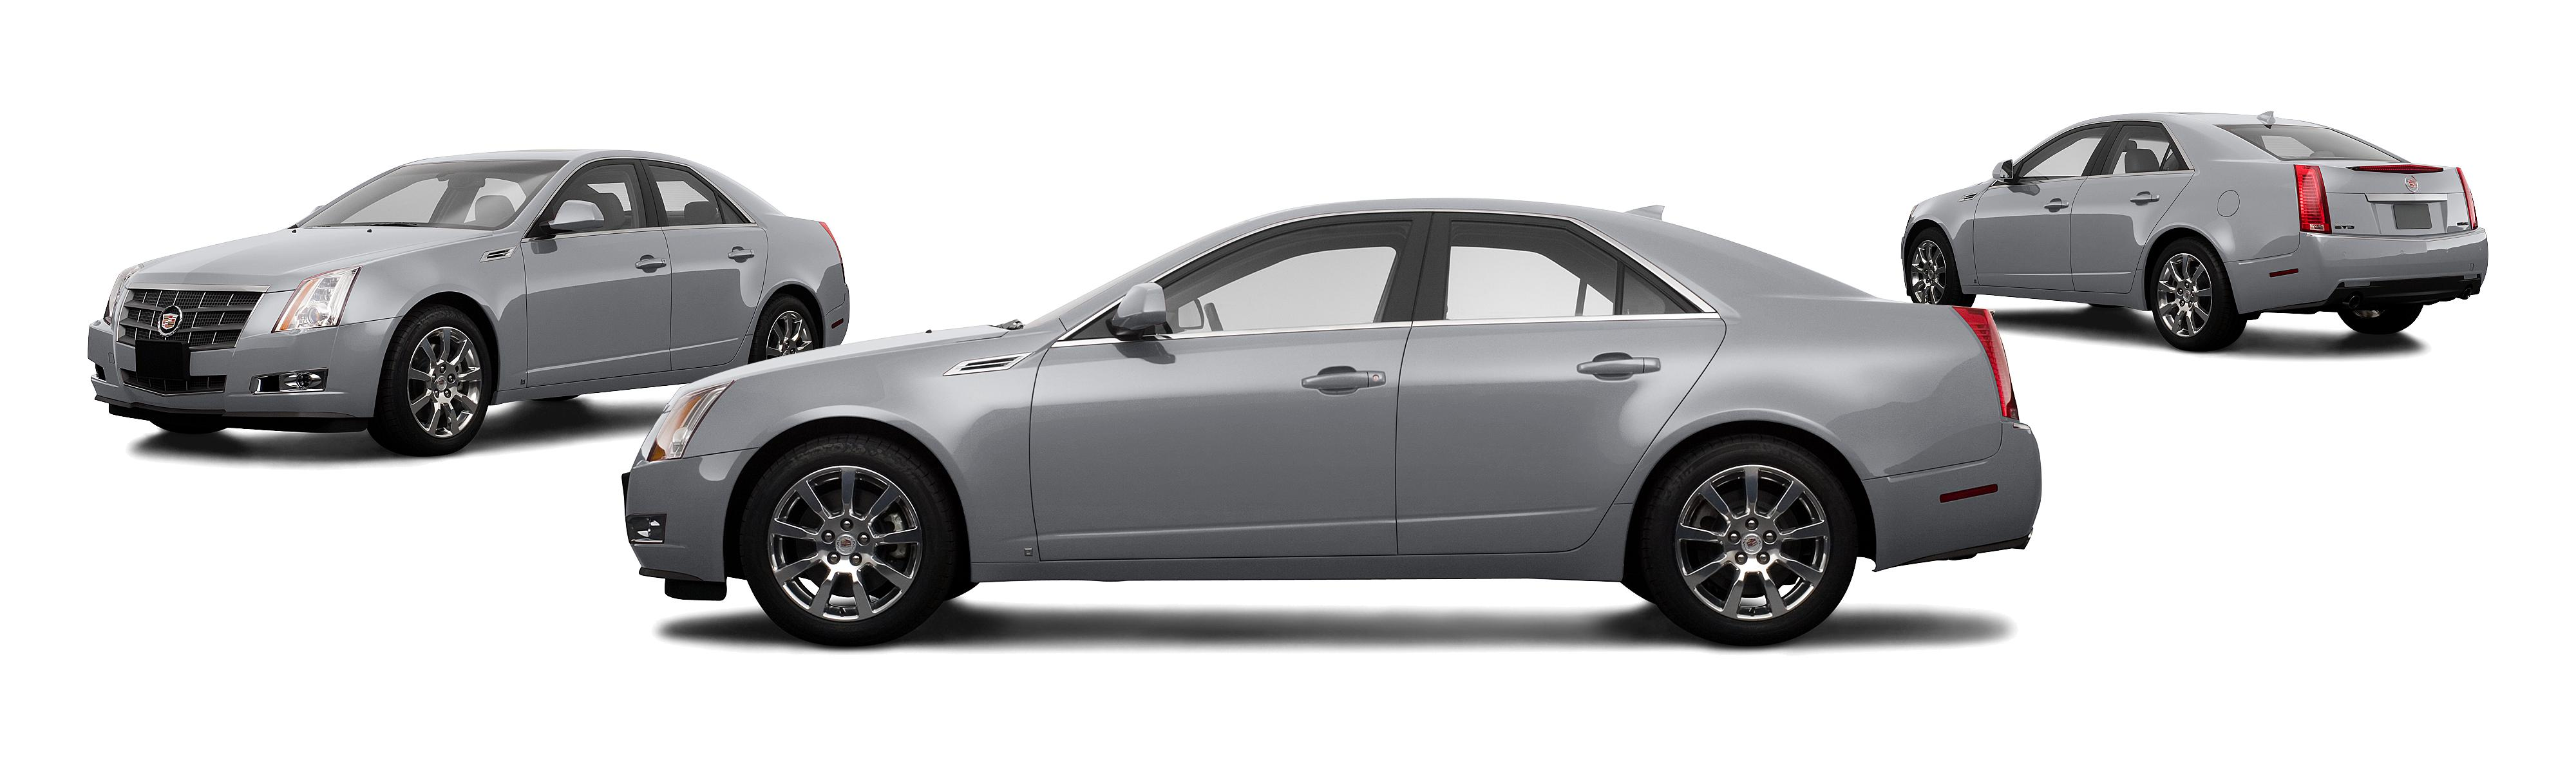 Used 2008 Pontiac G6 For Sale Pricing Features Edmunds